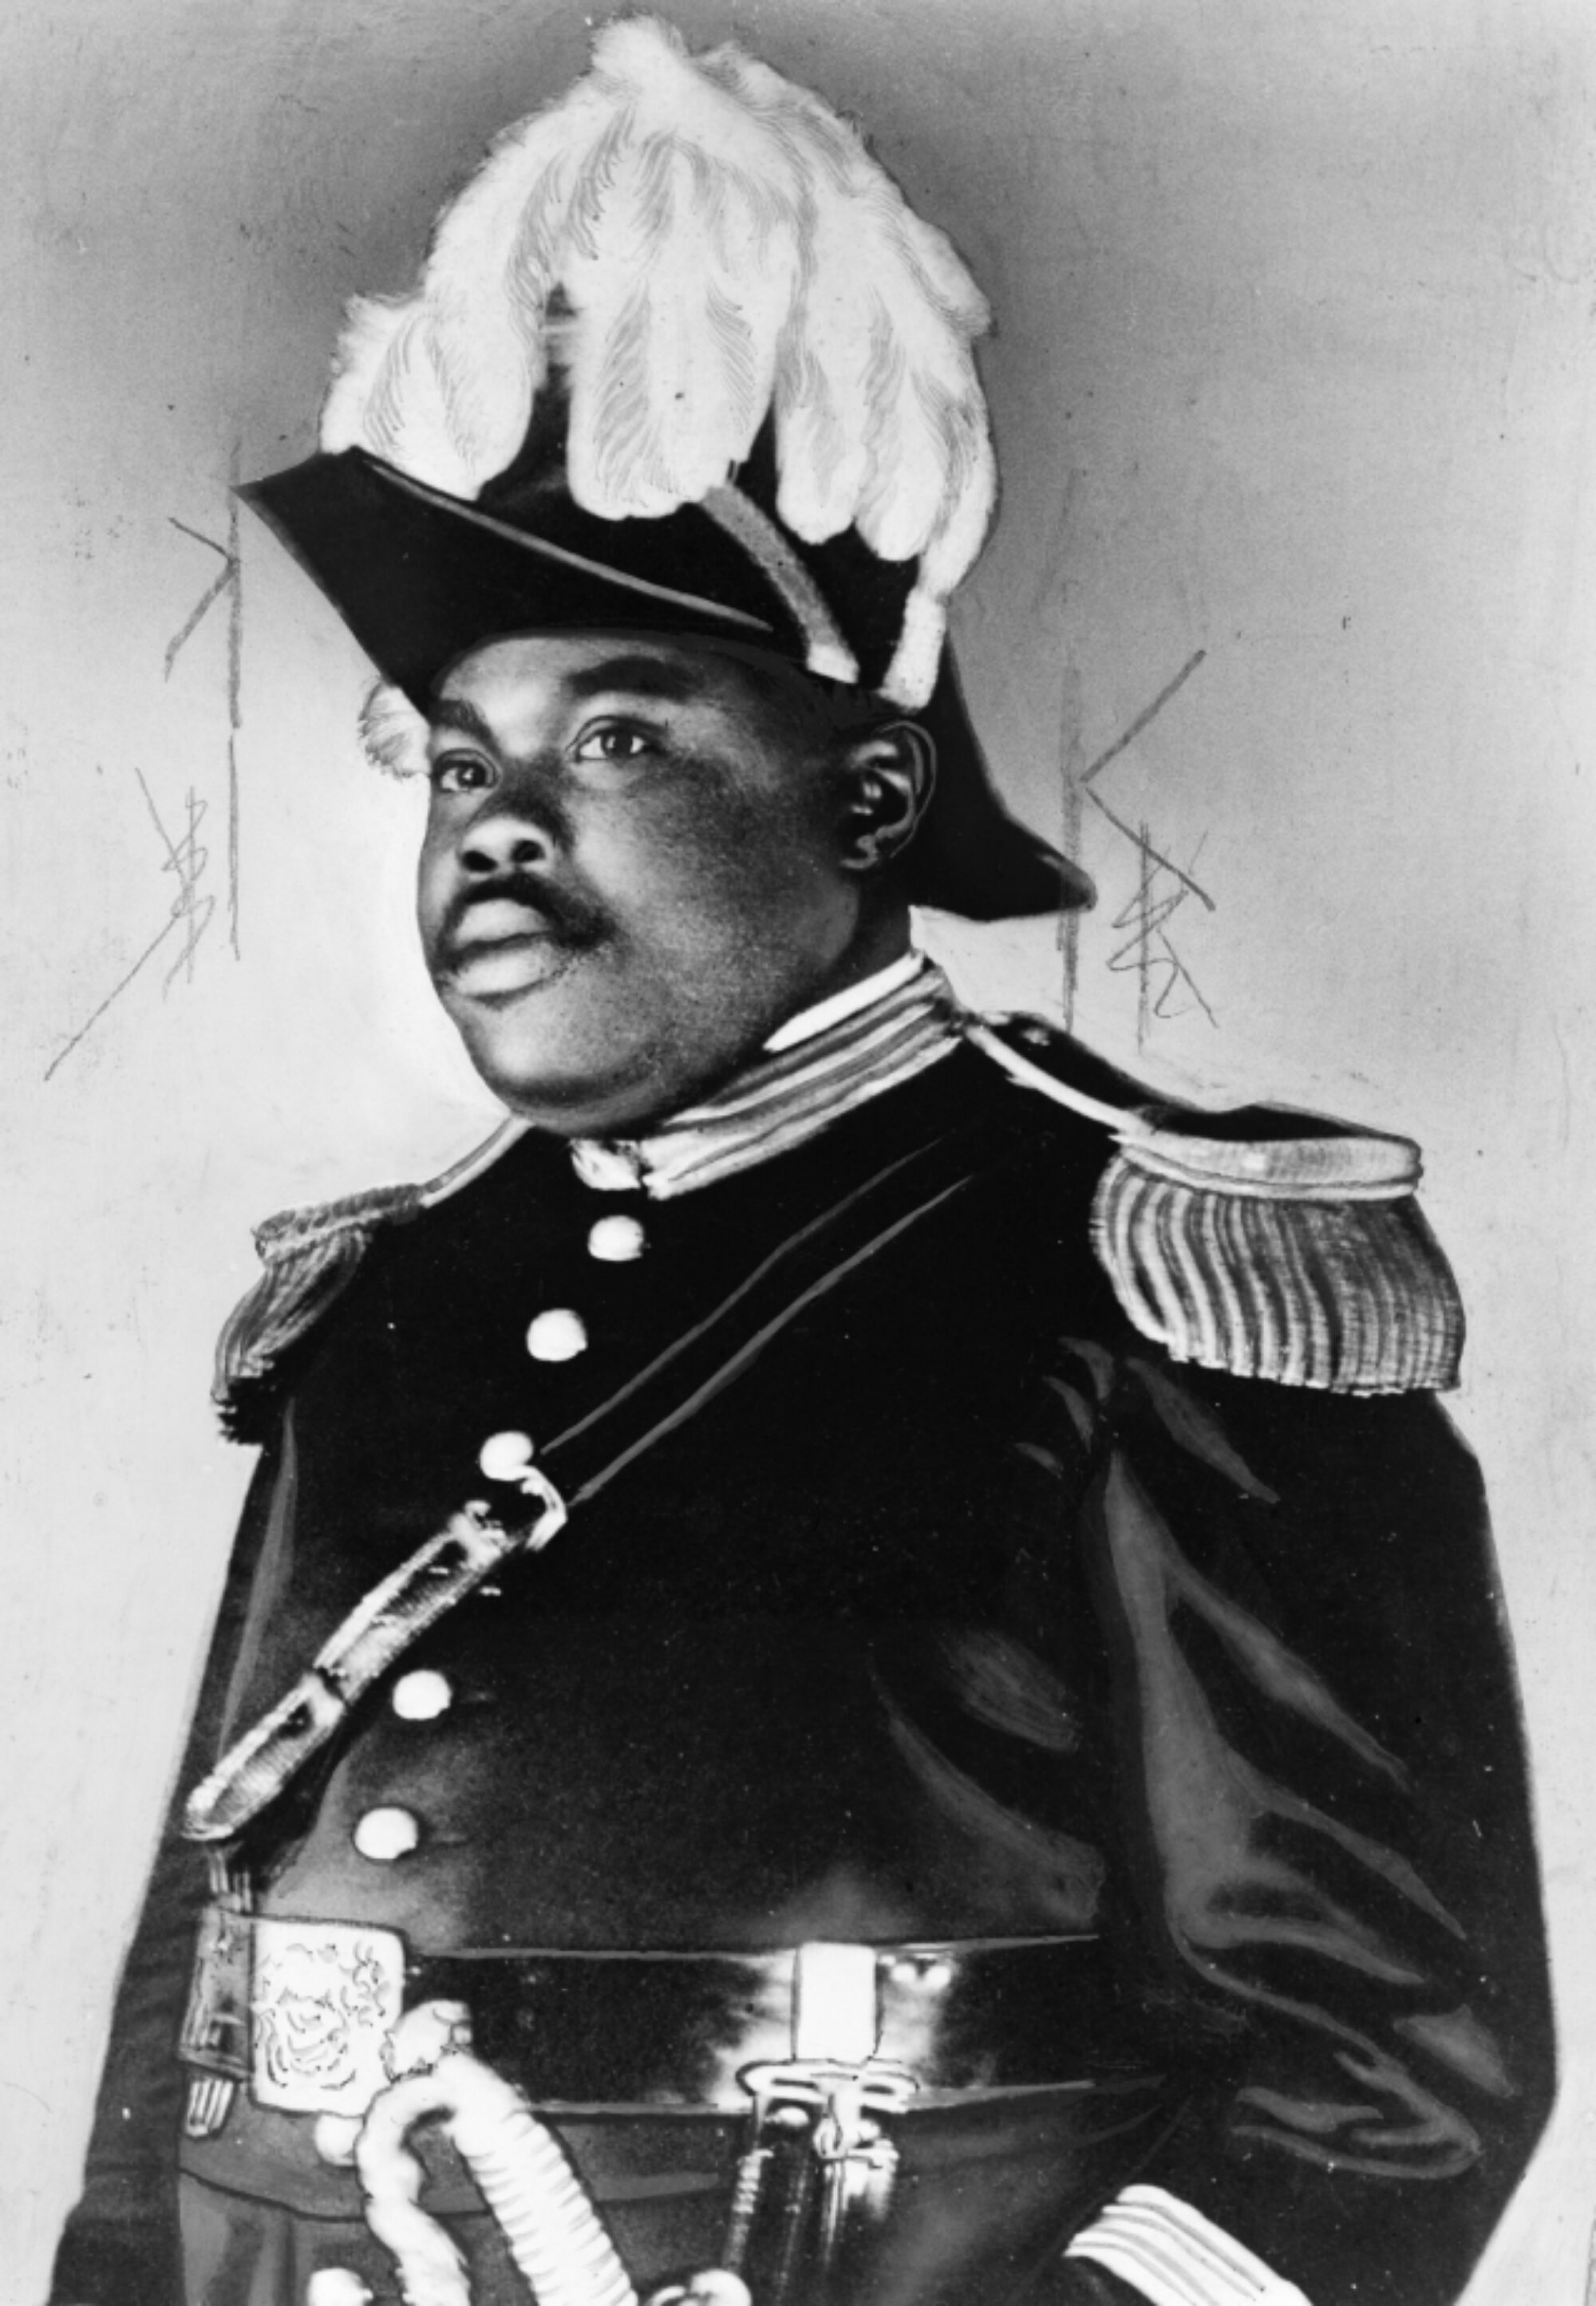 a biography of marcus garvey a jamaican political analyst and social activist Marcus garvey was born in st ann's bay, st ann, on august 17, 1887 to malcus marcus mosiah garvey, a mason and sarah jane richards a domestic worker.